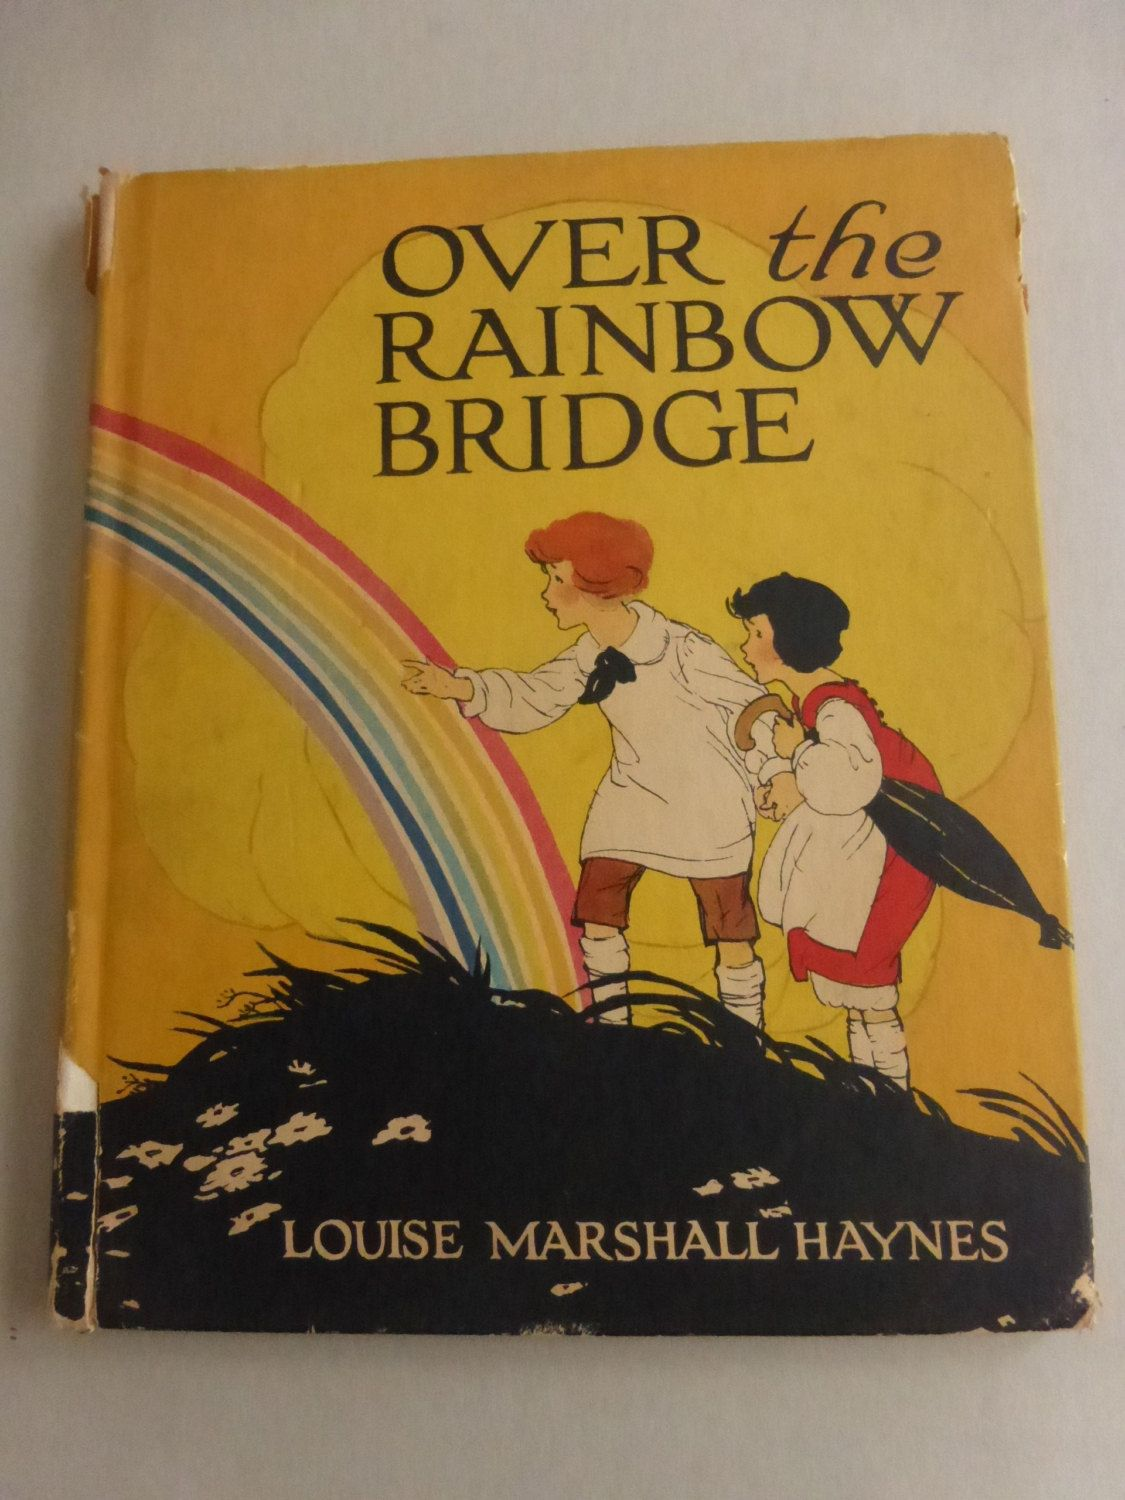 Antique Book Over The Rainbow Bridge By Louise Marshall Haynes Illustrated By Carmen Browne